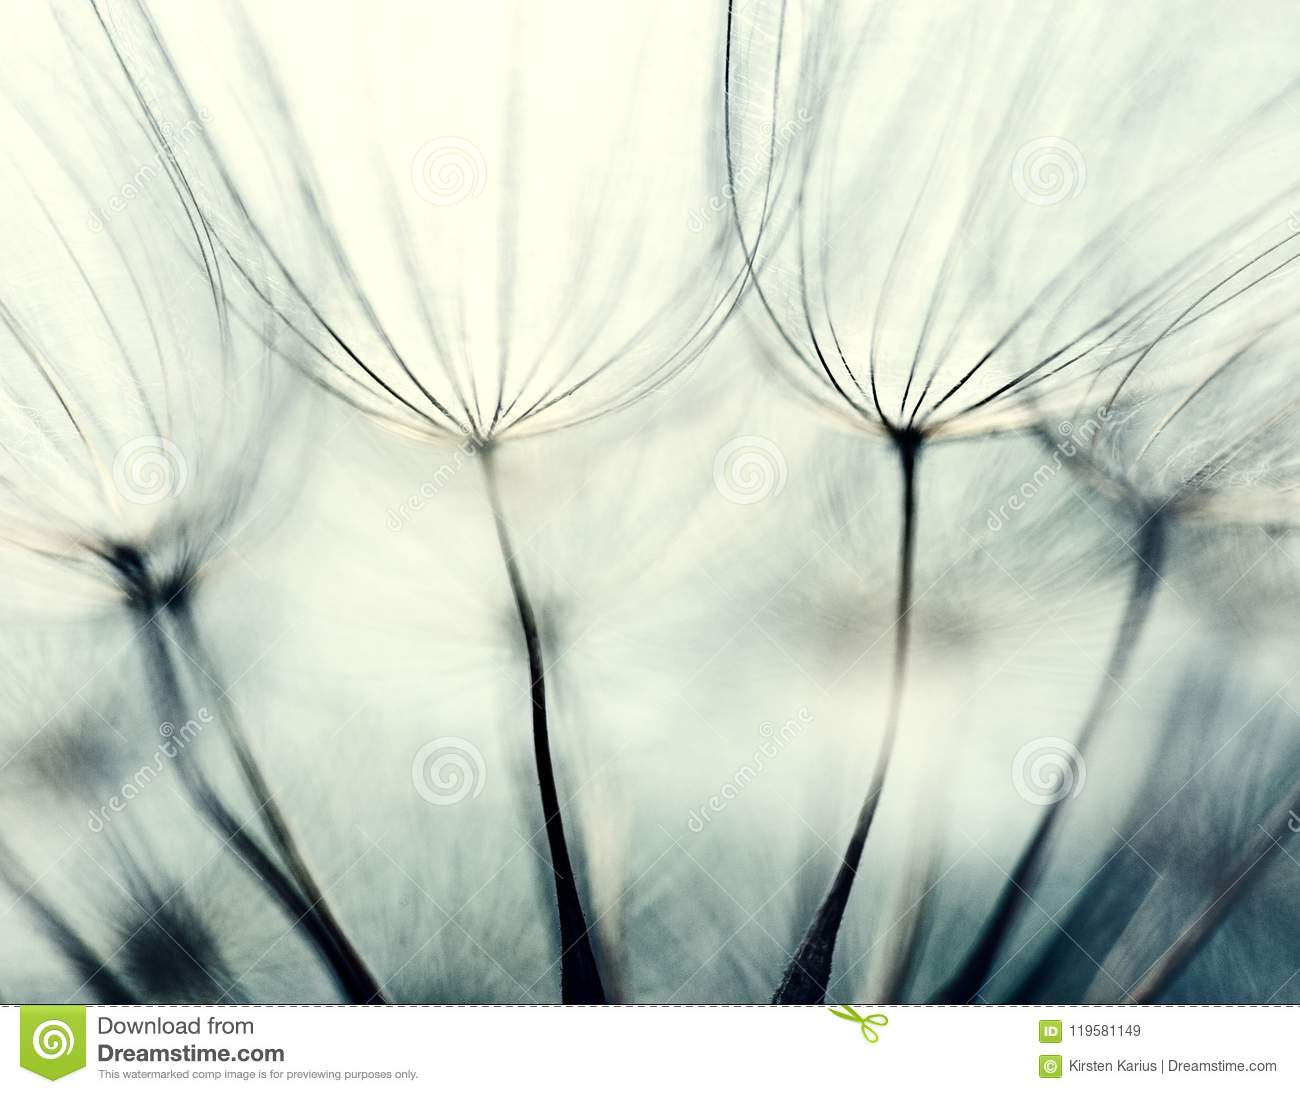 Seeds of Meadow Salsify